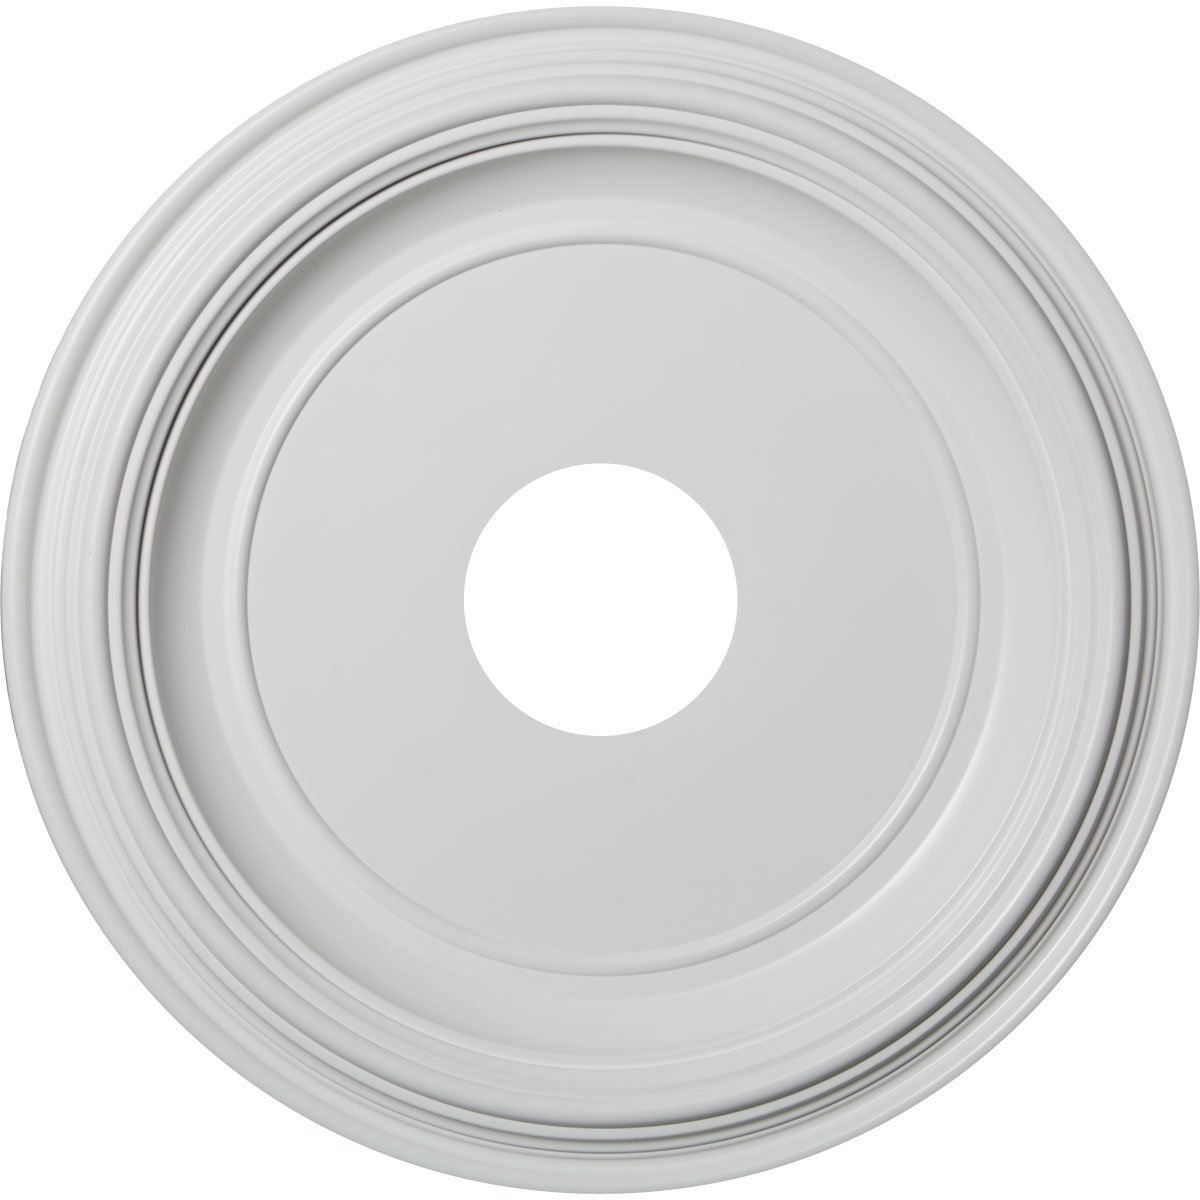 Ekena Millwork CMP16TR Traditional Thermoformed PVC Ceiling Medallion, 16''OD x 3 1/2''ID x 1 3/8''P (Fits Canopies up to 9 1/2''), White